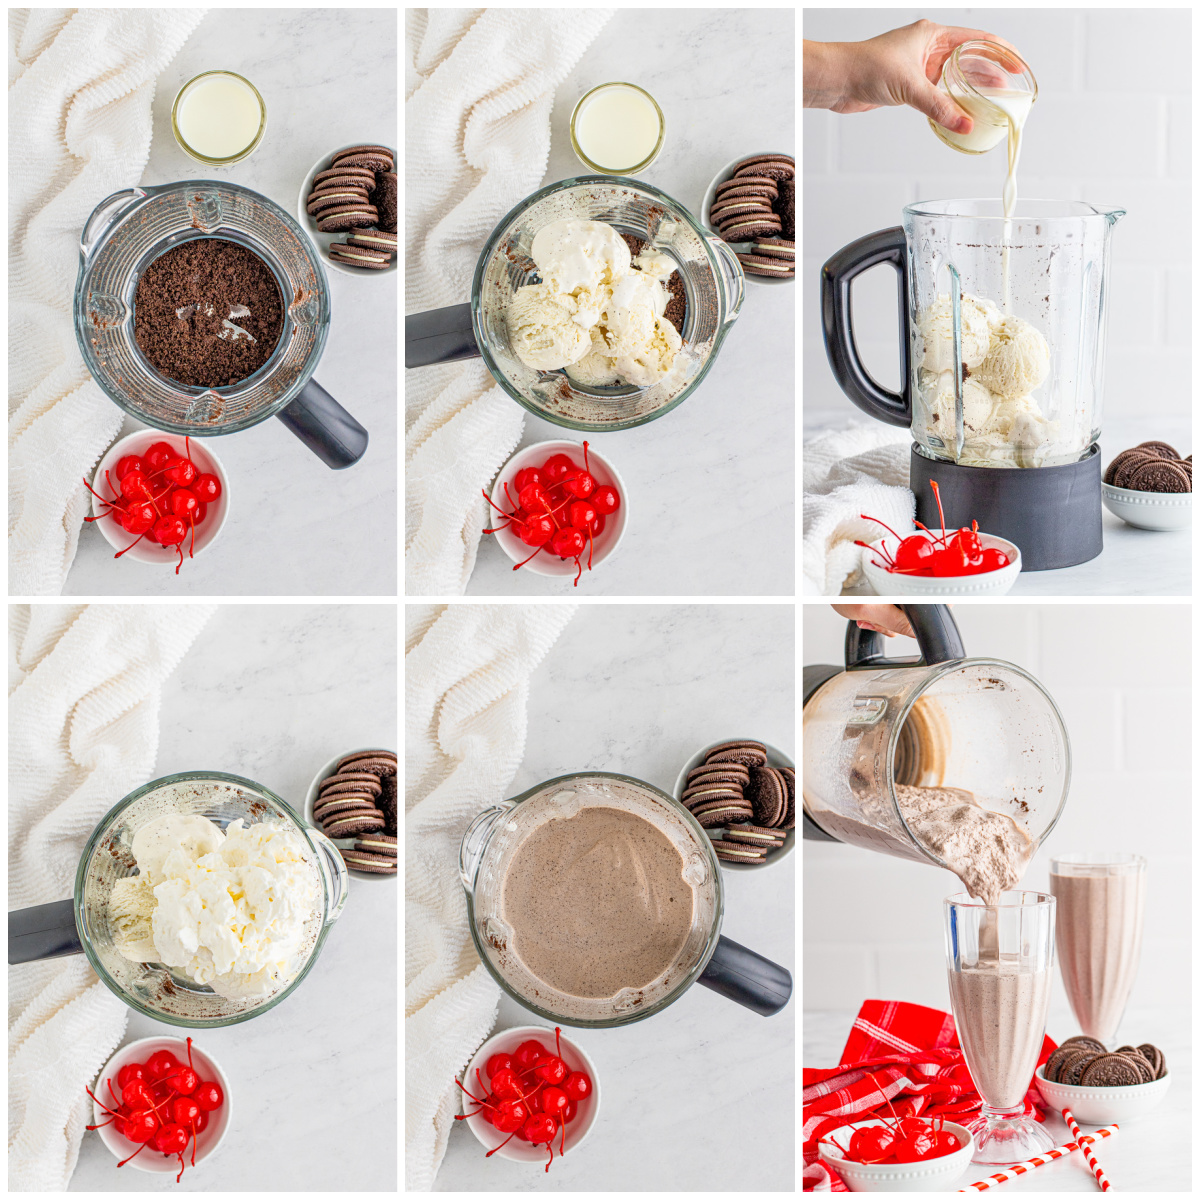 Step by step photos on how to make a Cookies and Cream Milkshake